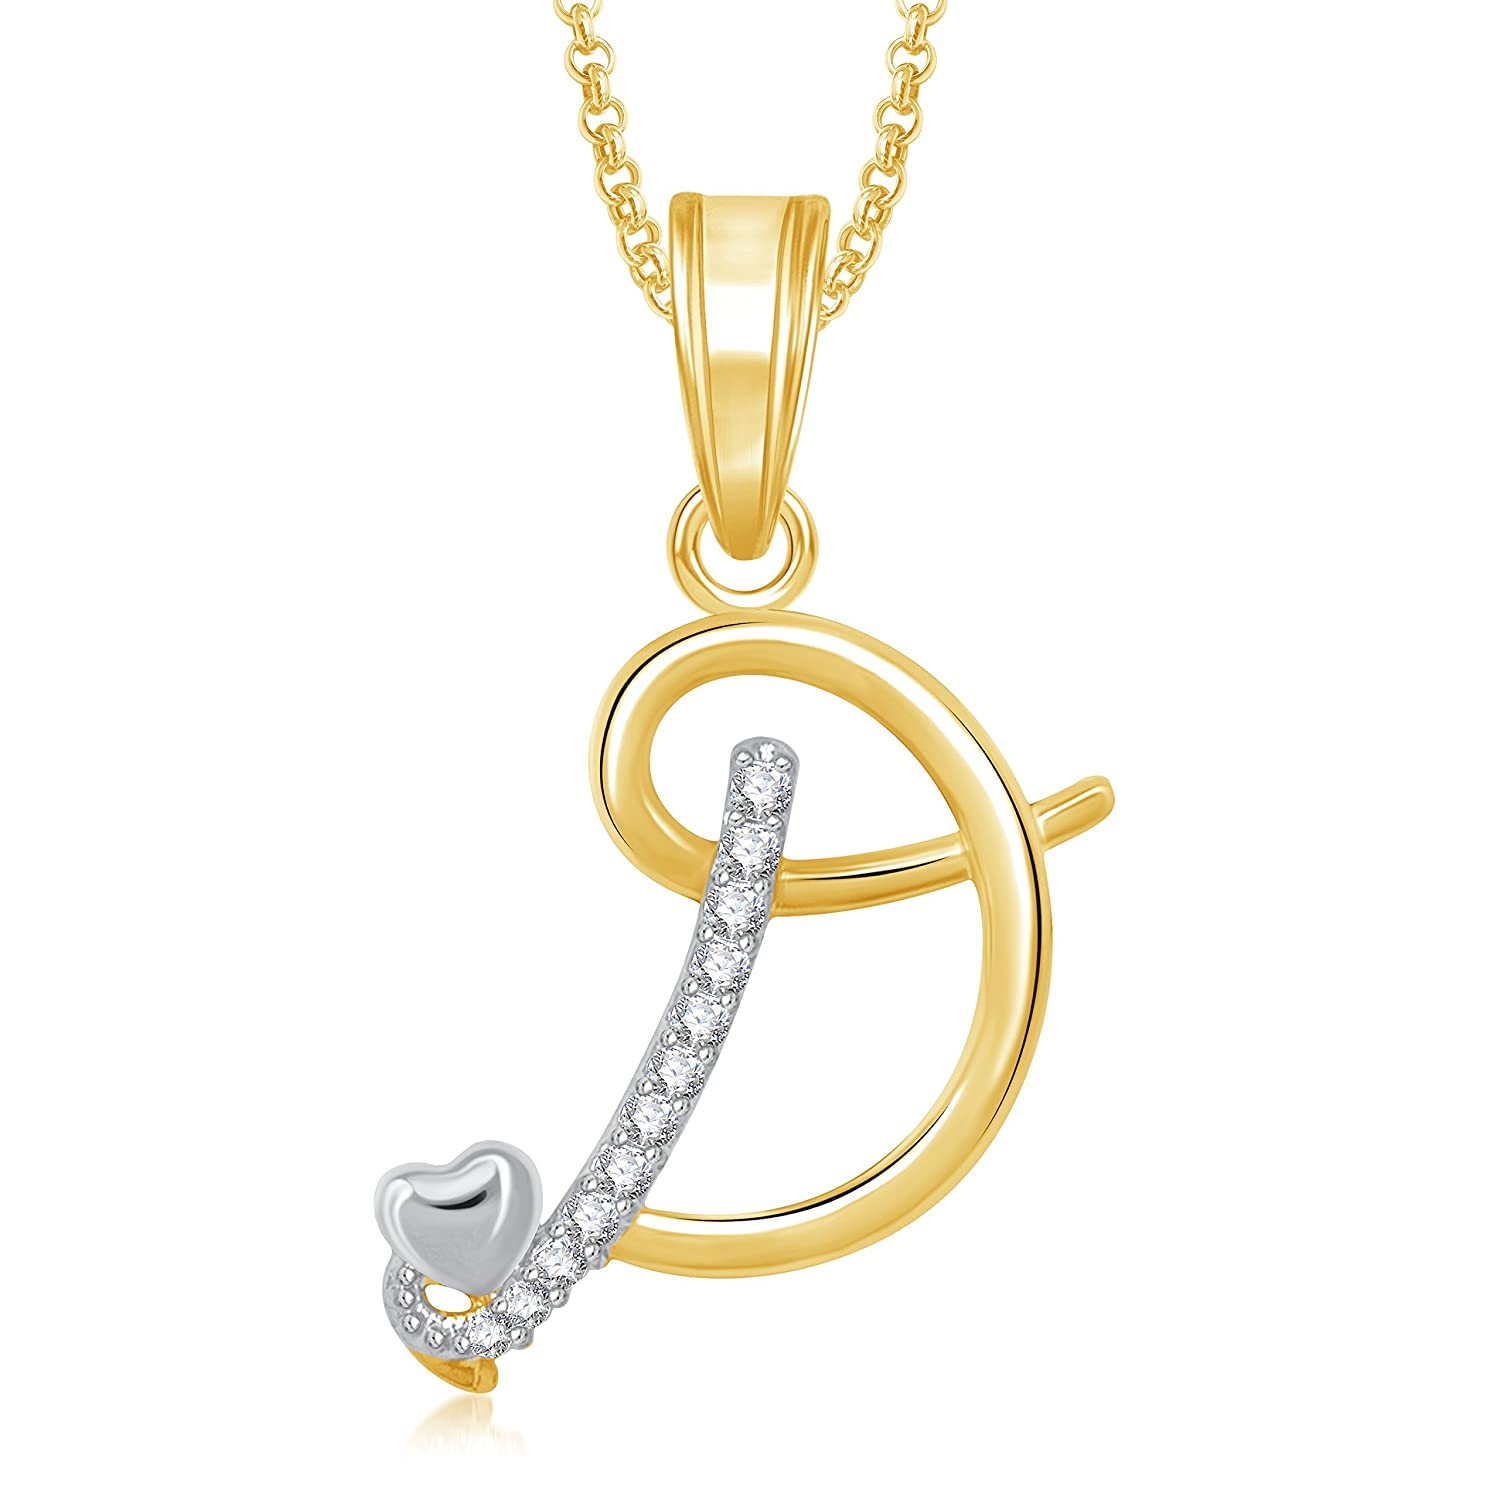 Buy meenaz gold plated american diamond d letter pendant pendant buy meenaz gold plated american diamond d letter pendant pendant for unisex online at low prices in india amazon jewellery store amazon mozeypictures